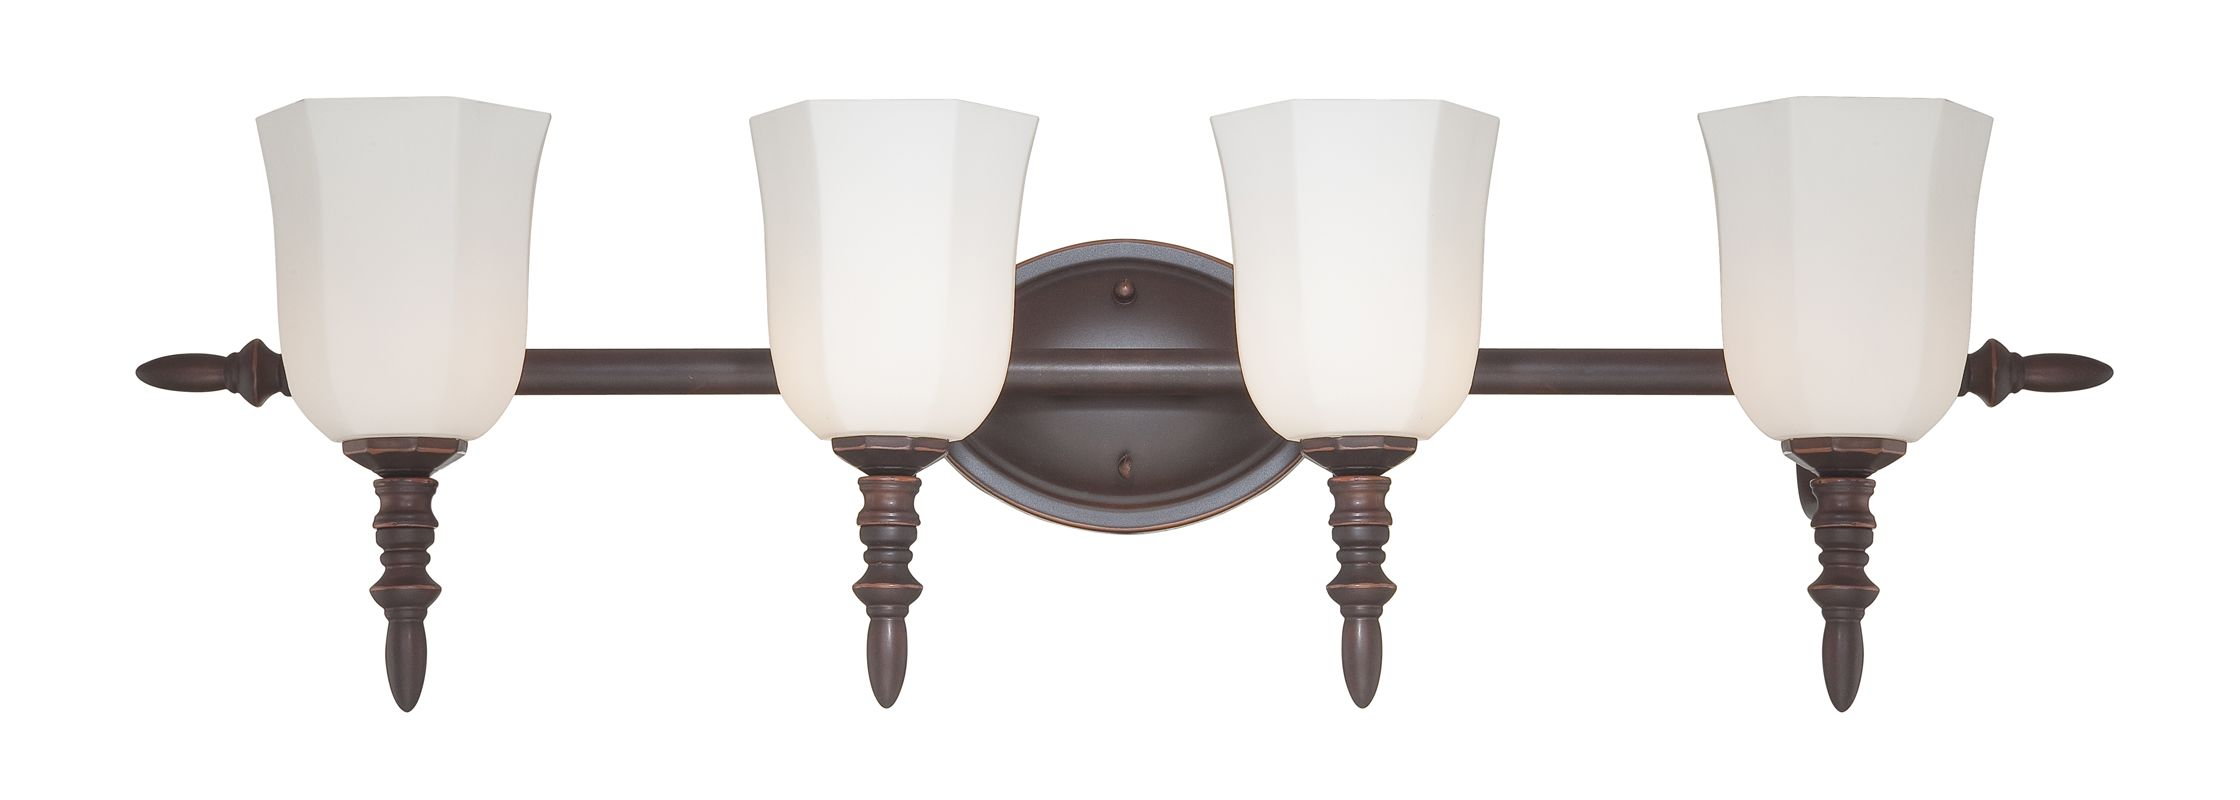 Eurofase Lighting 20377 4 Light Bathroom Wall Fixture from the Llody